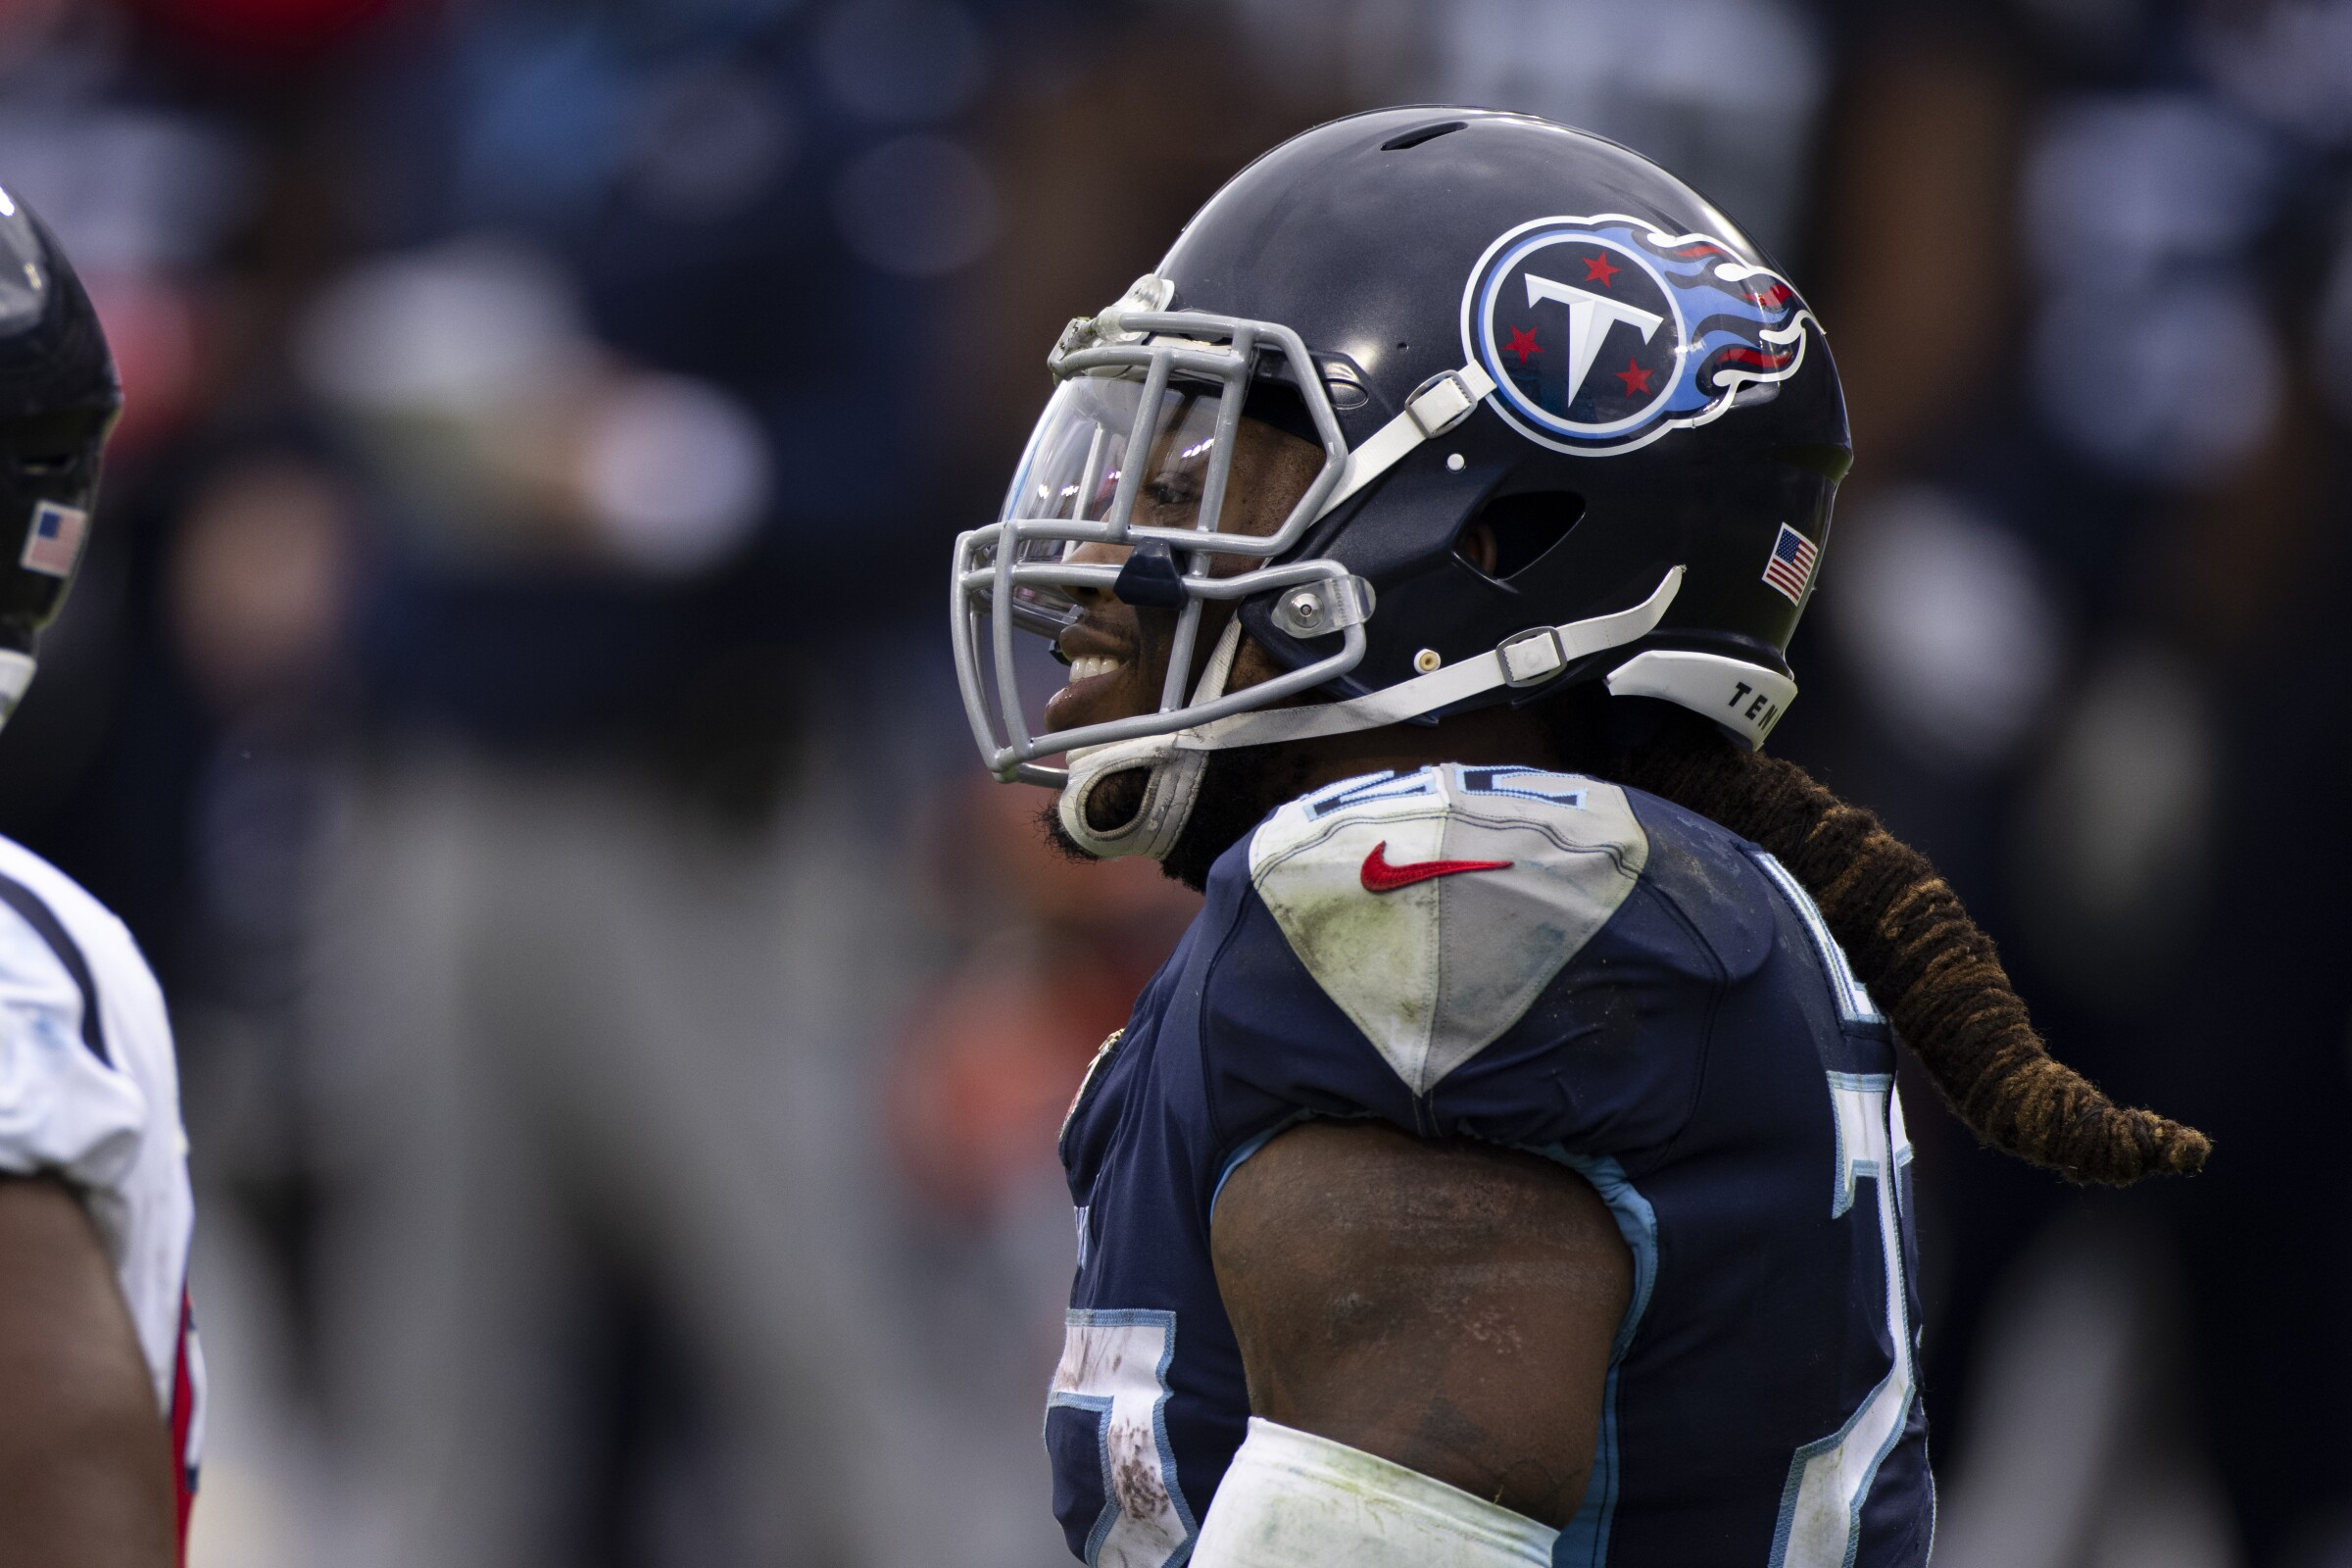 Tennessee Titans running back Derrick Henry smiles after a run.